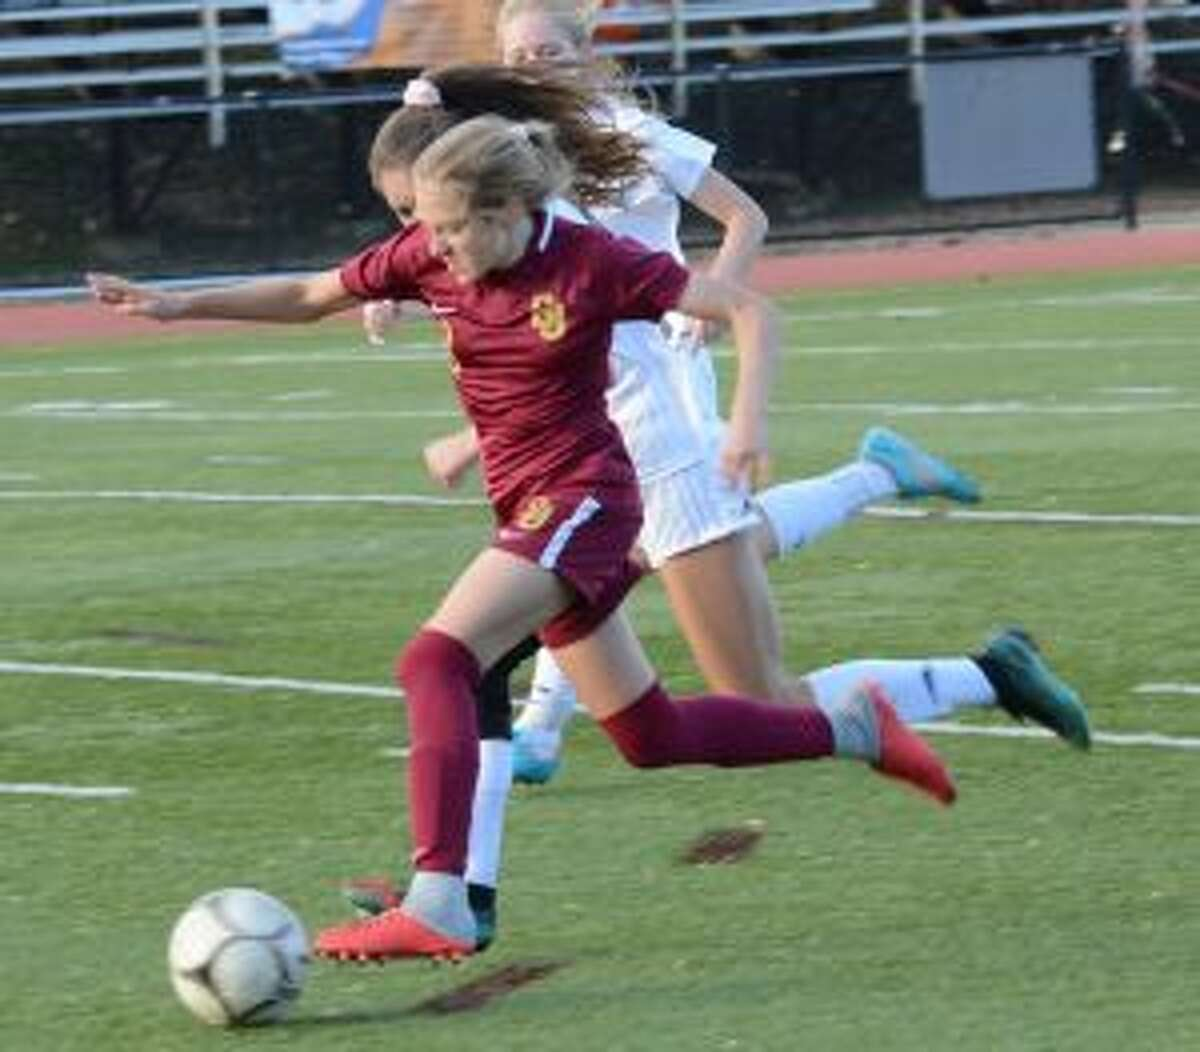 Mary Lundregan makes a run against Wilton. - Andy Hutchison photos